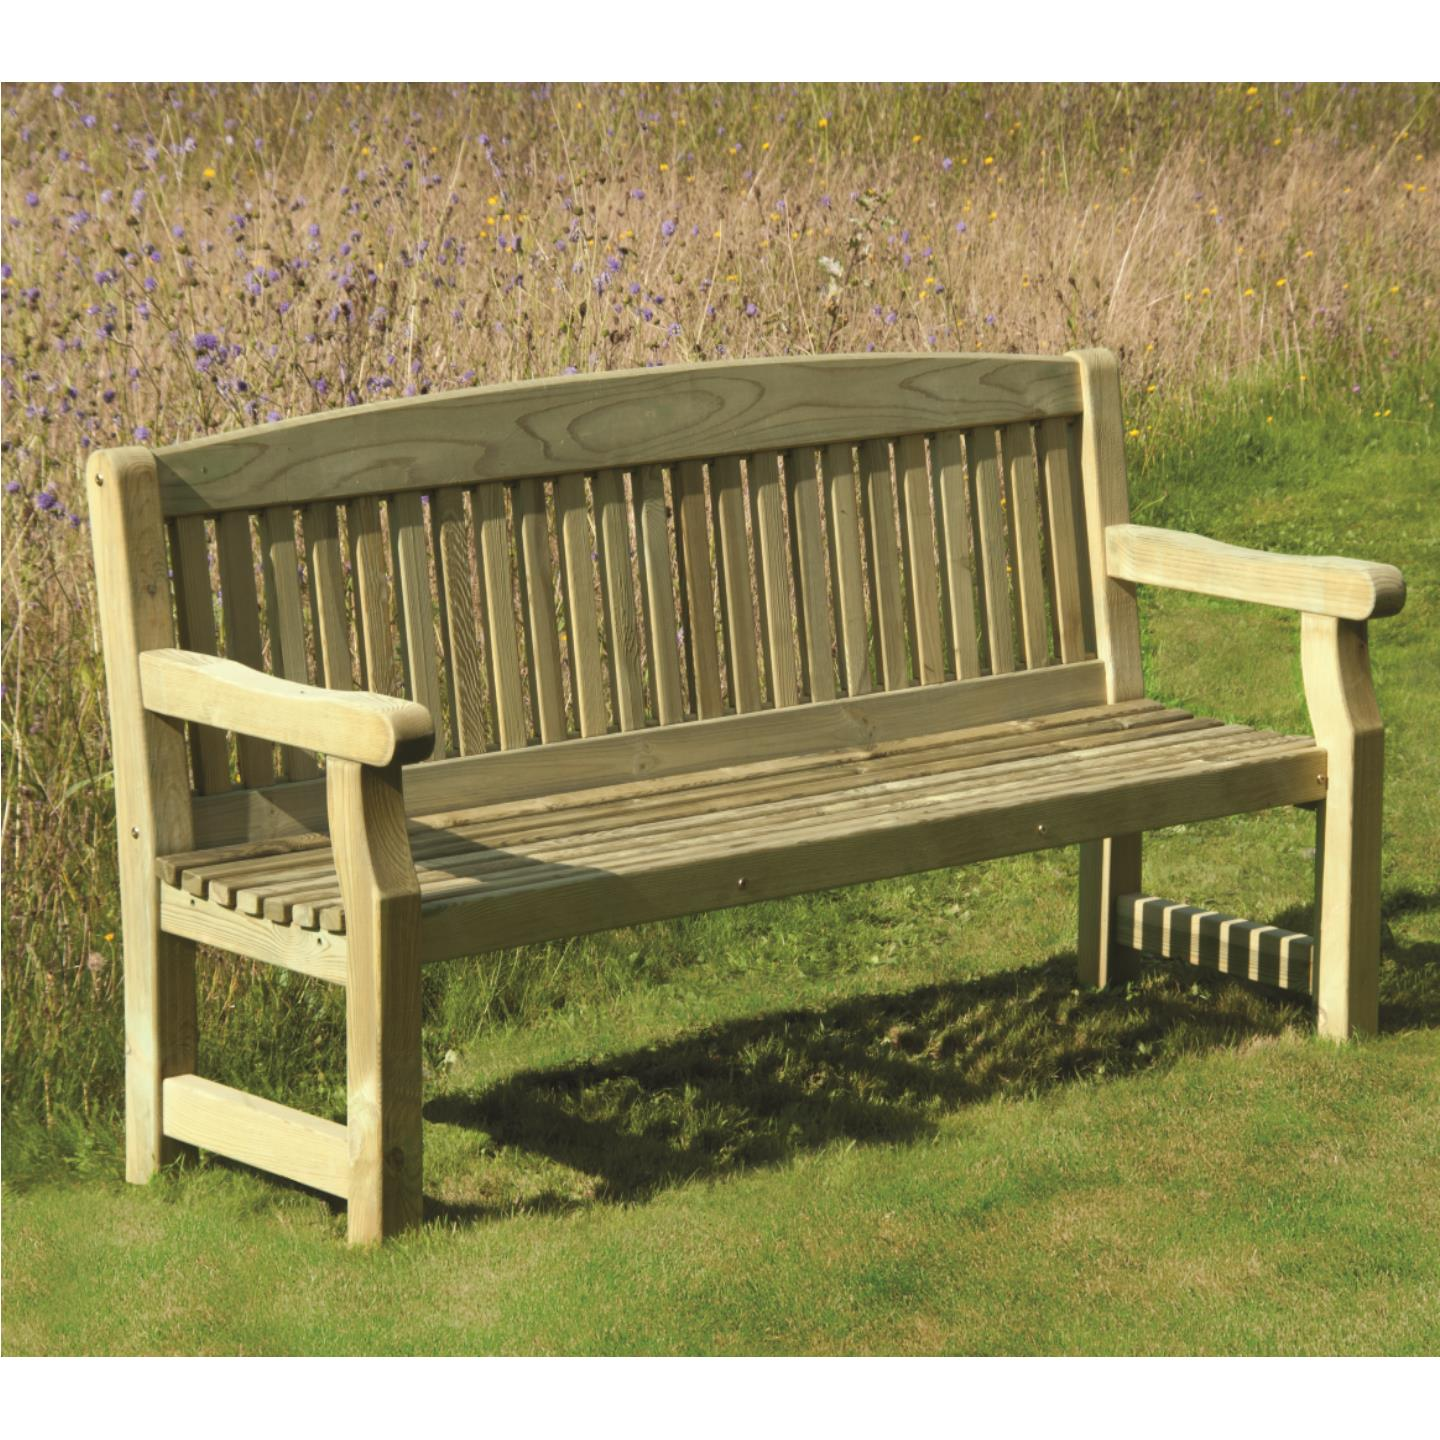 Garden Furniture Chester | Ringwood Fencing | Quality Furniture